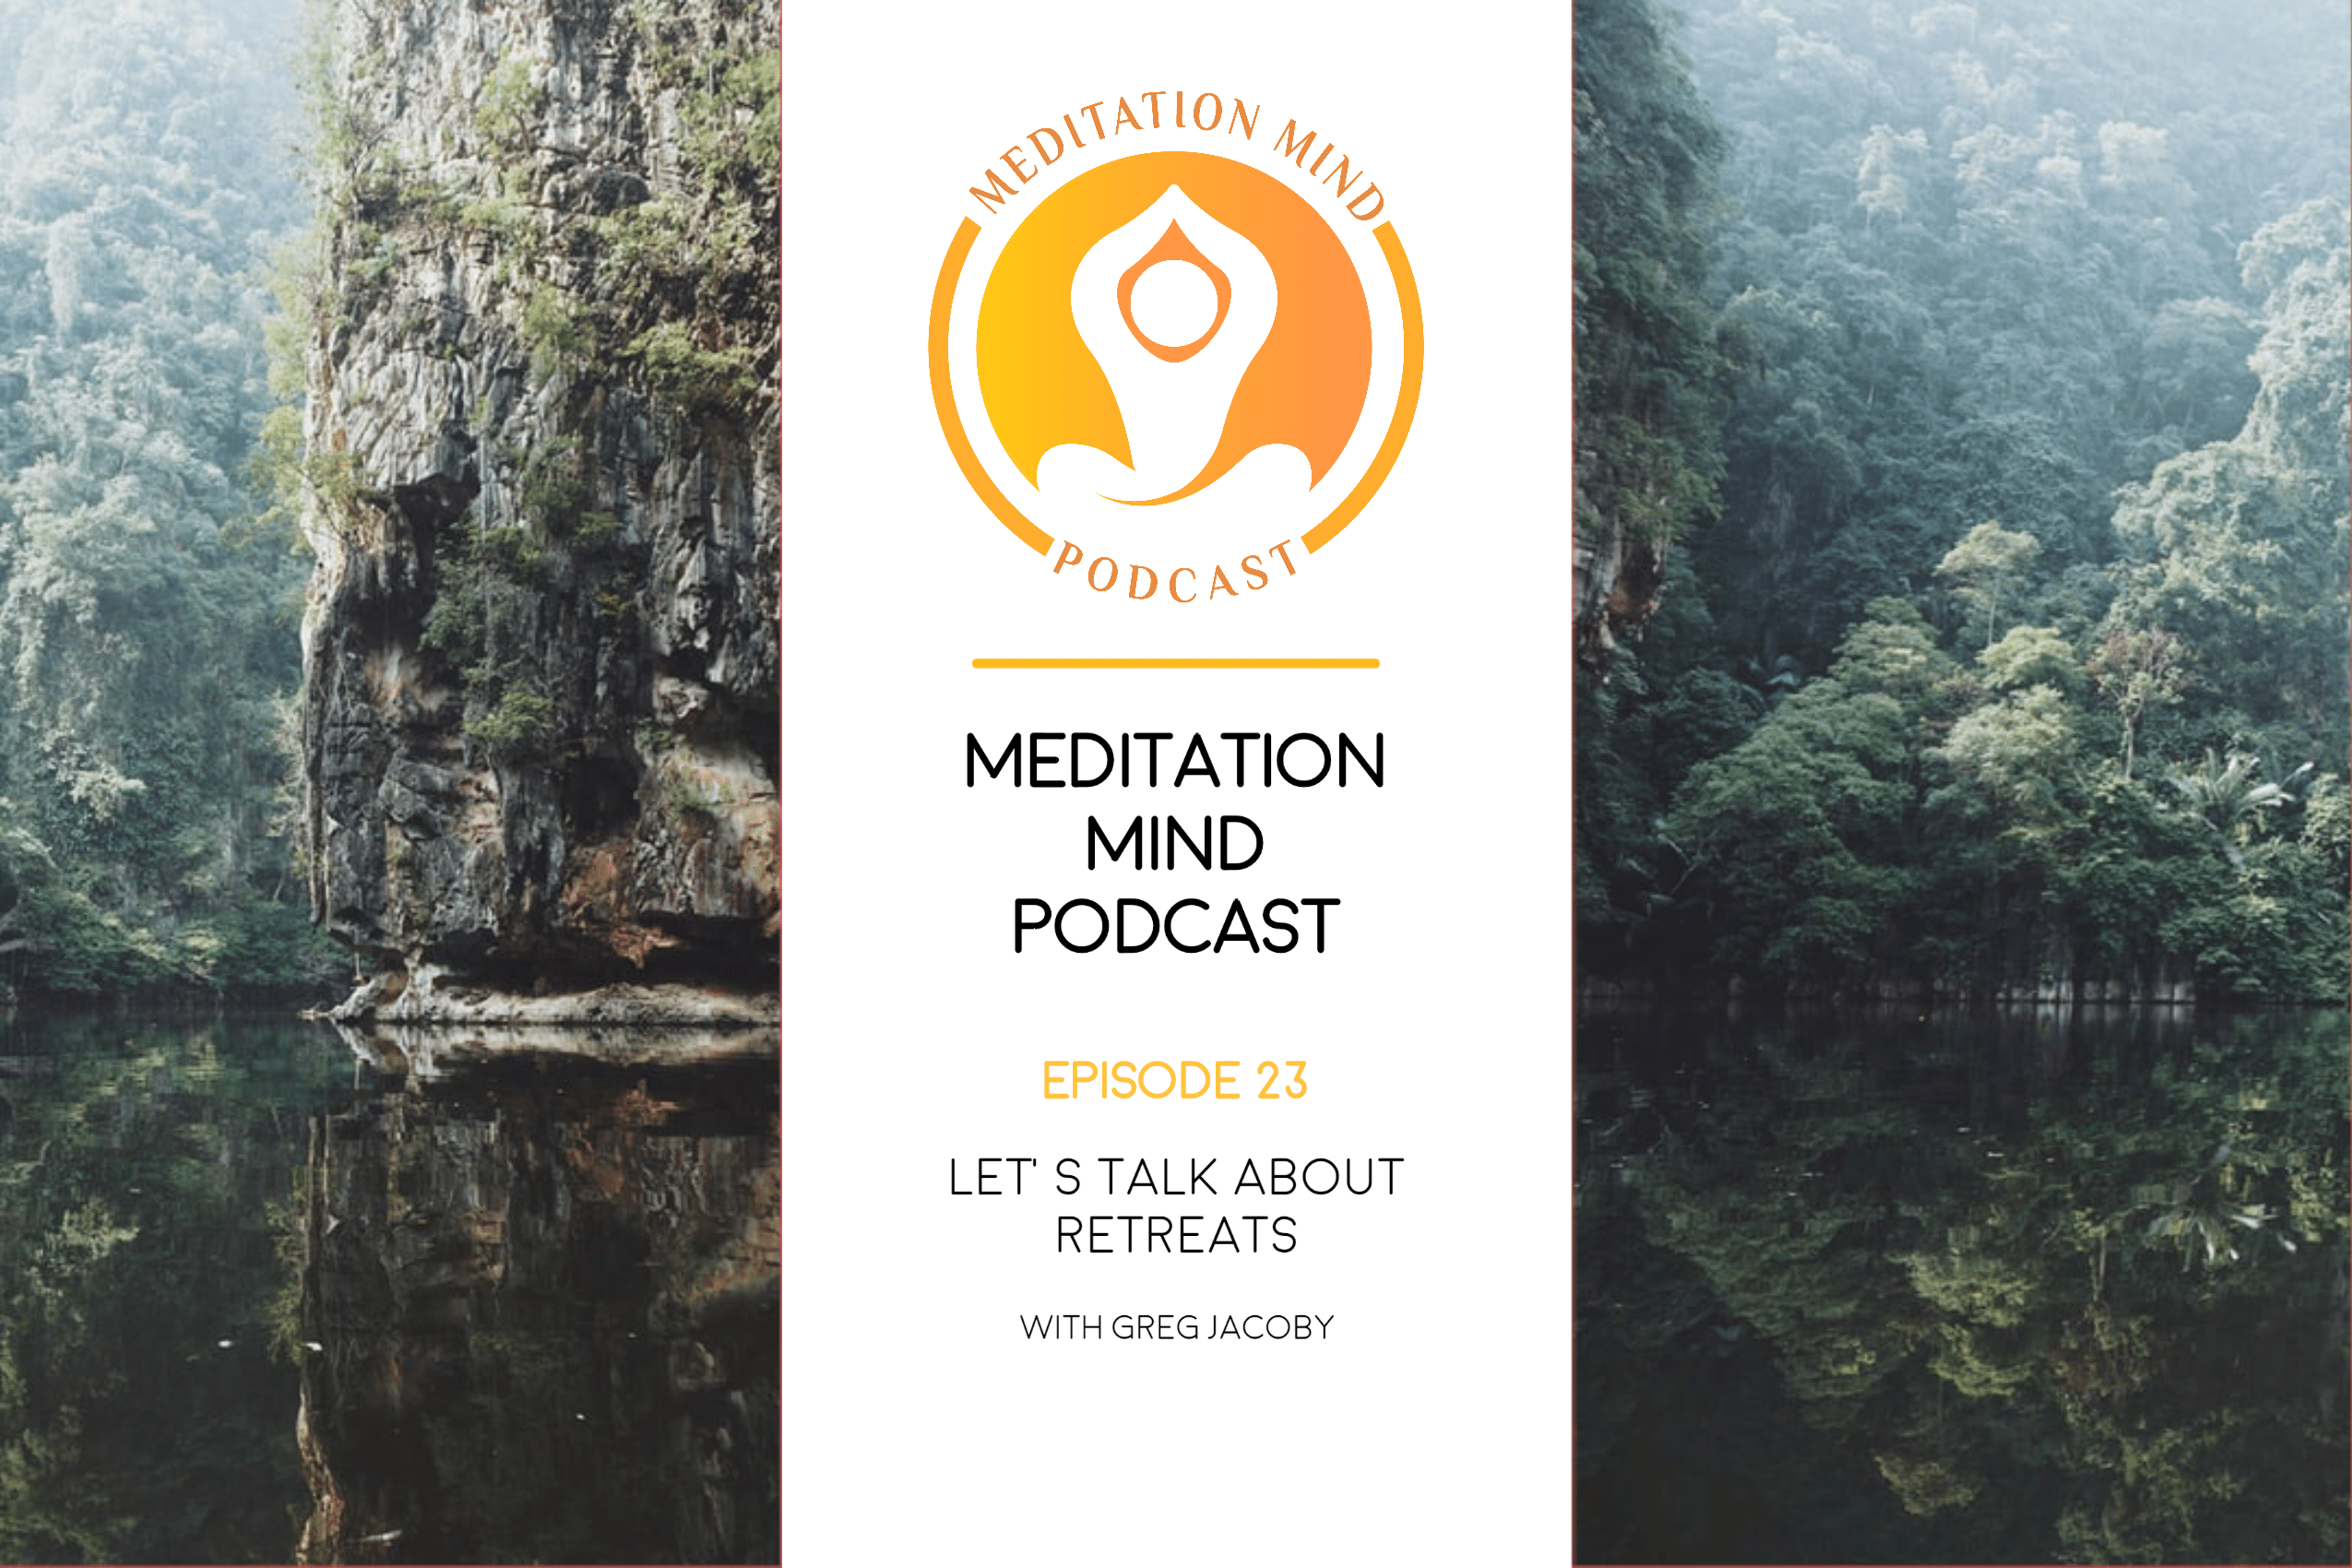 Meditation Mind Podcast talking about Meditation retreats